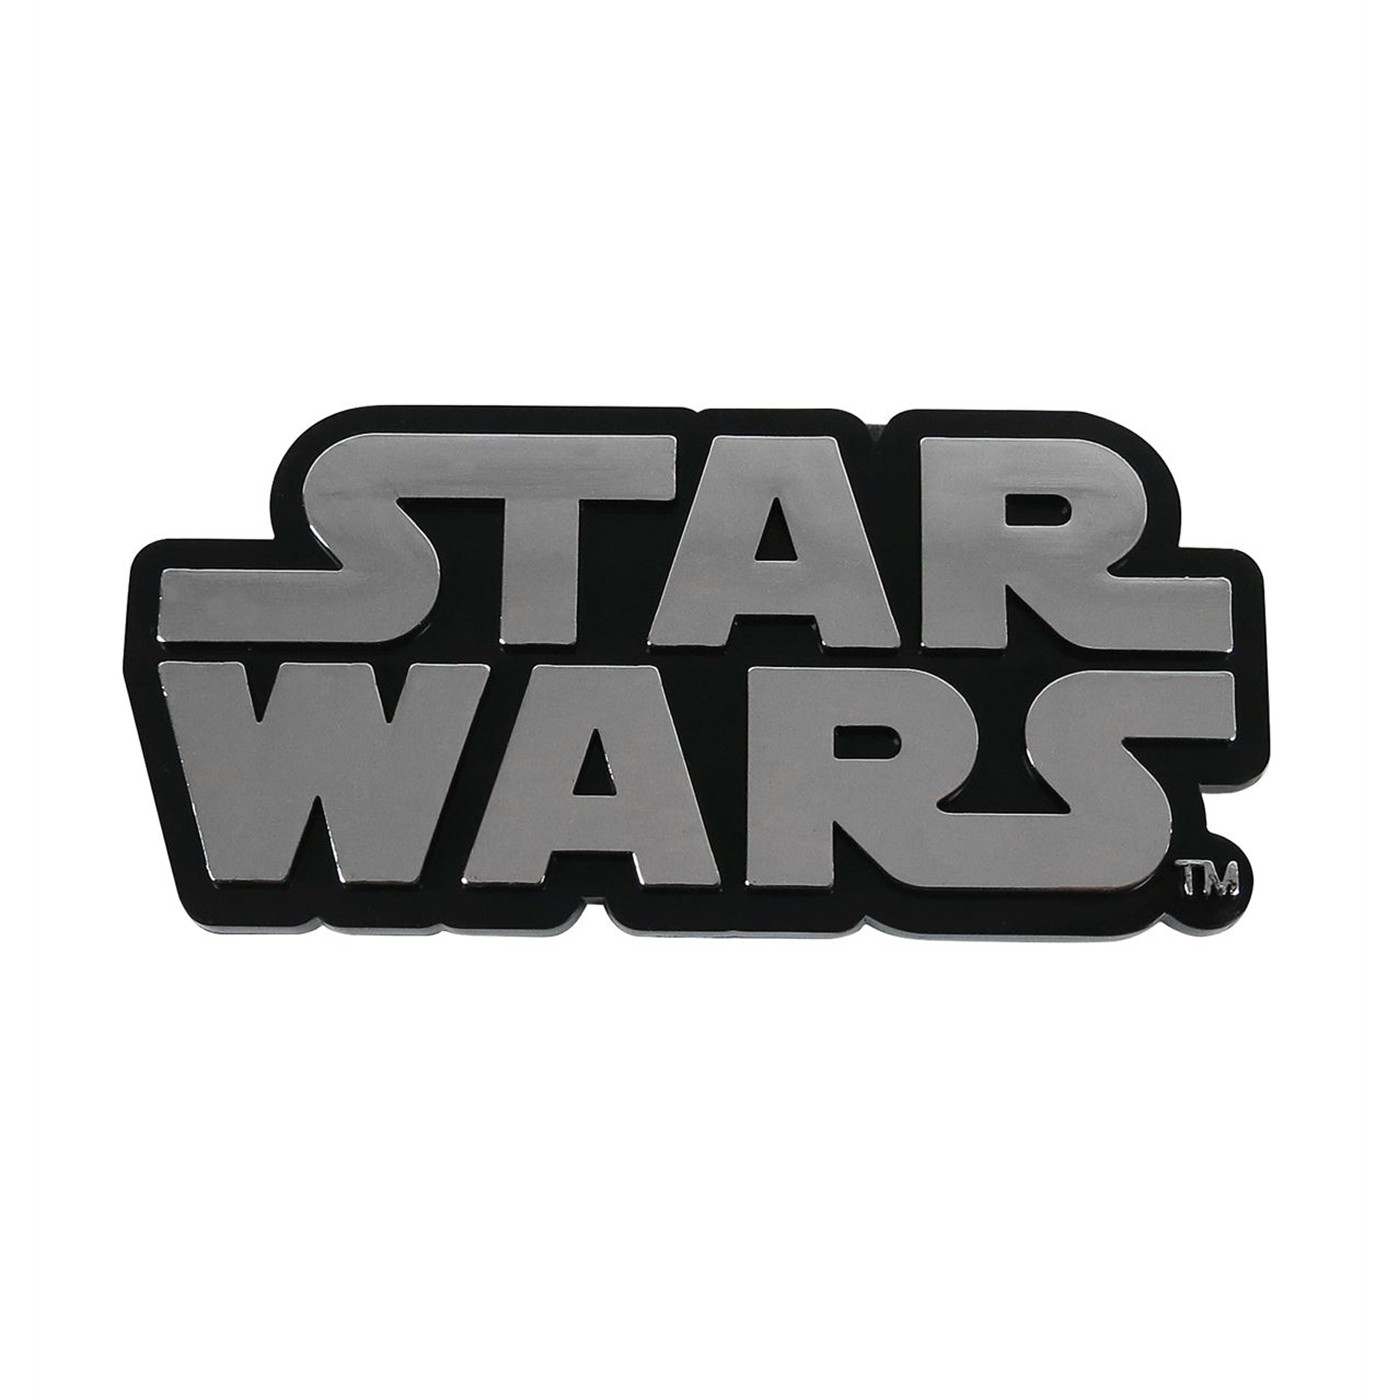 Star Wars Logo Chrome Car Emblem